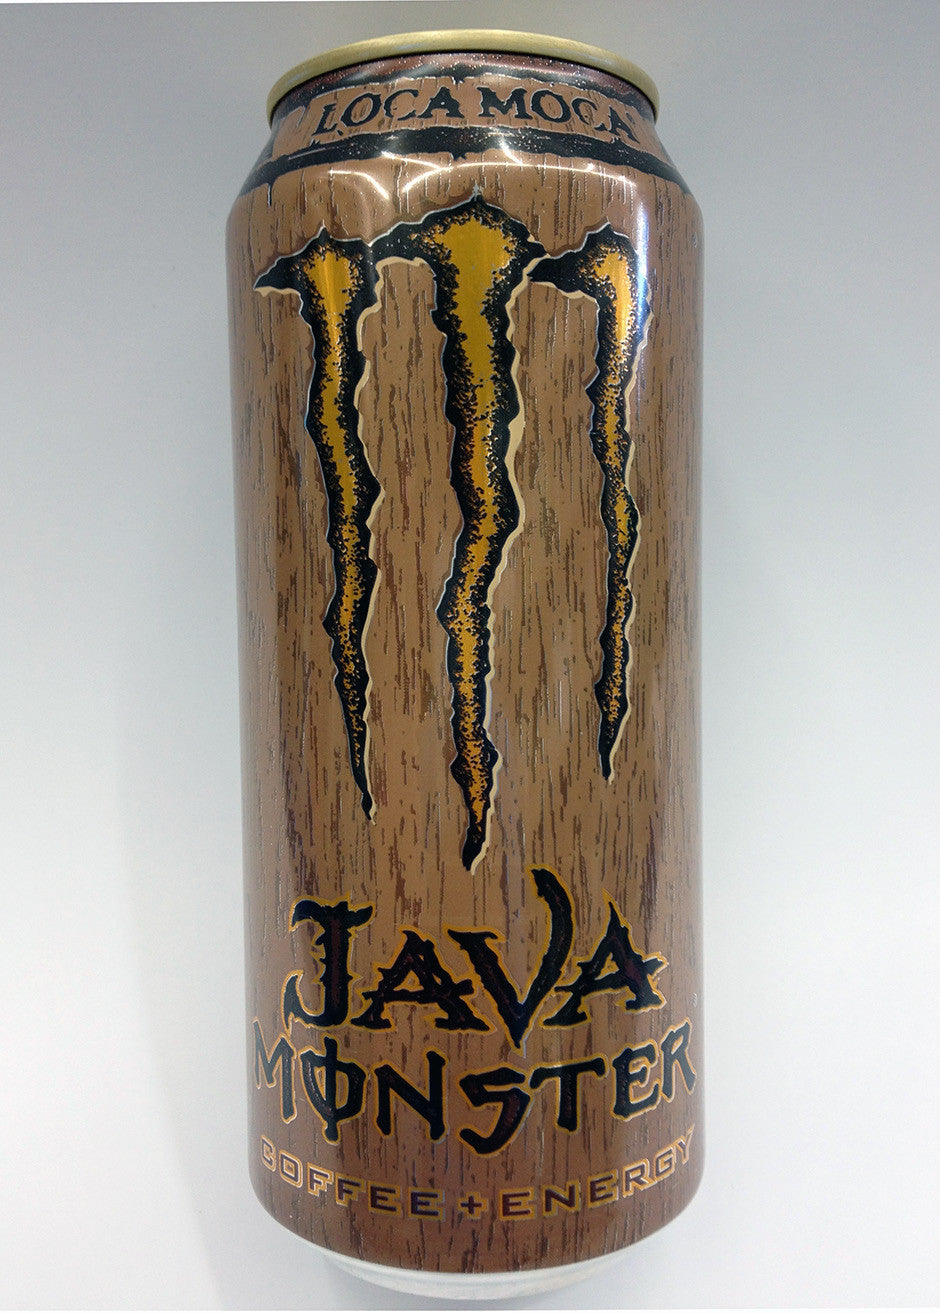 Monster Java Loca Moca Coffee + Energy